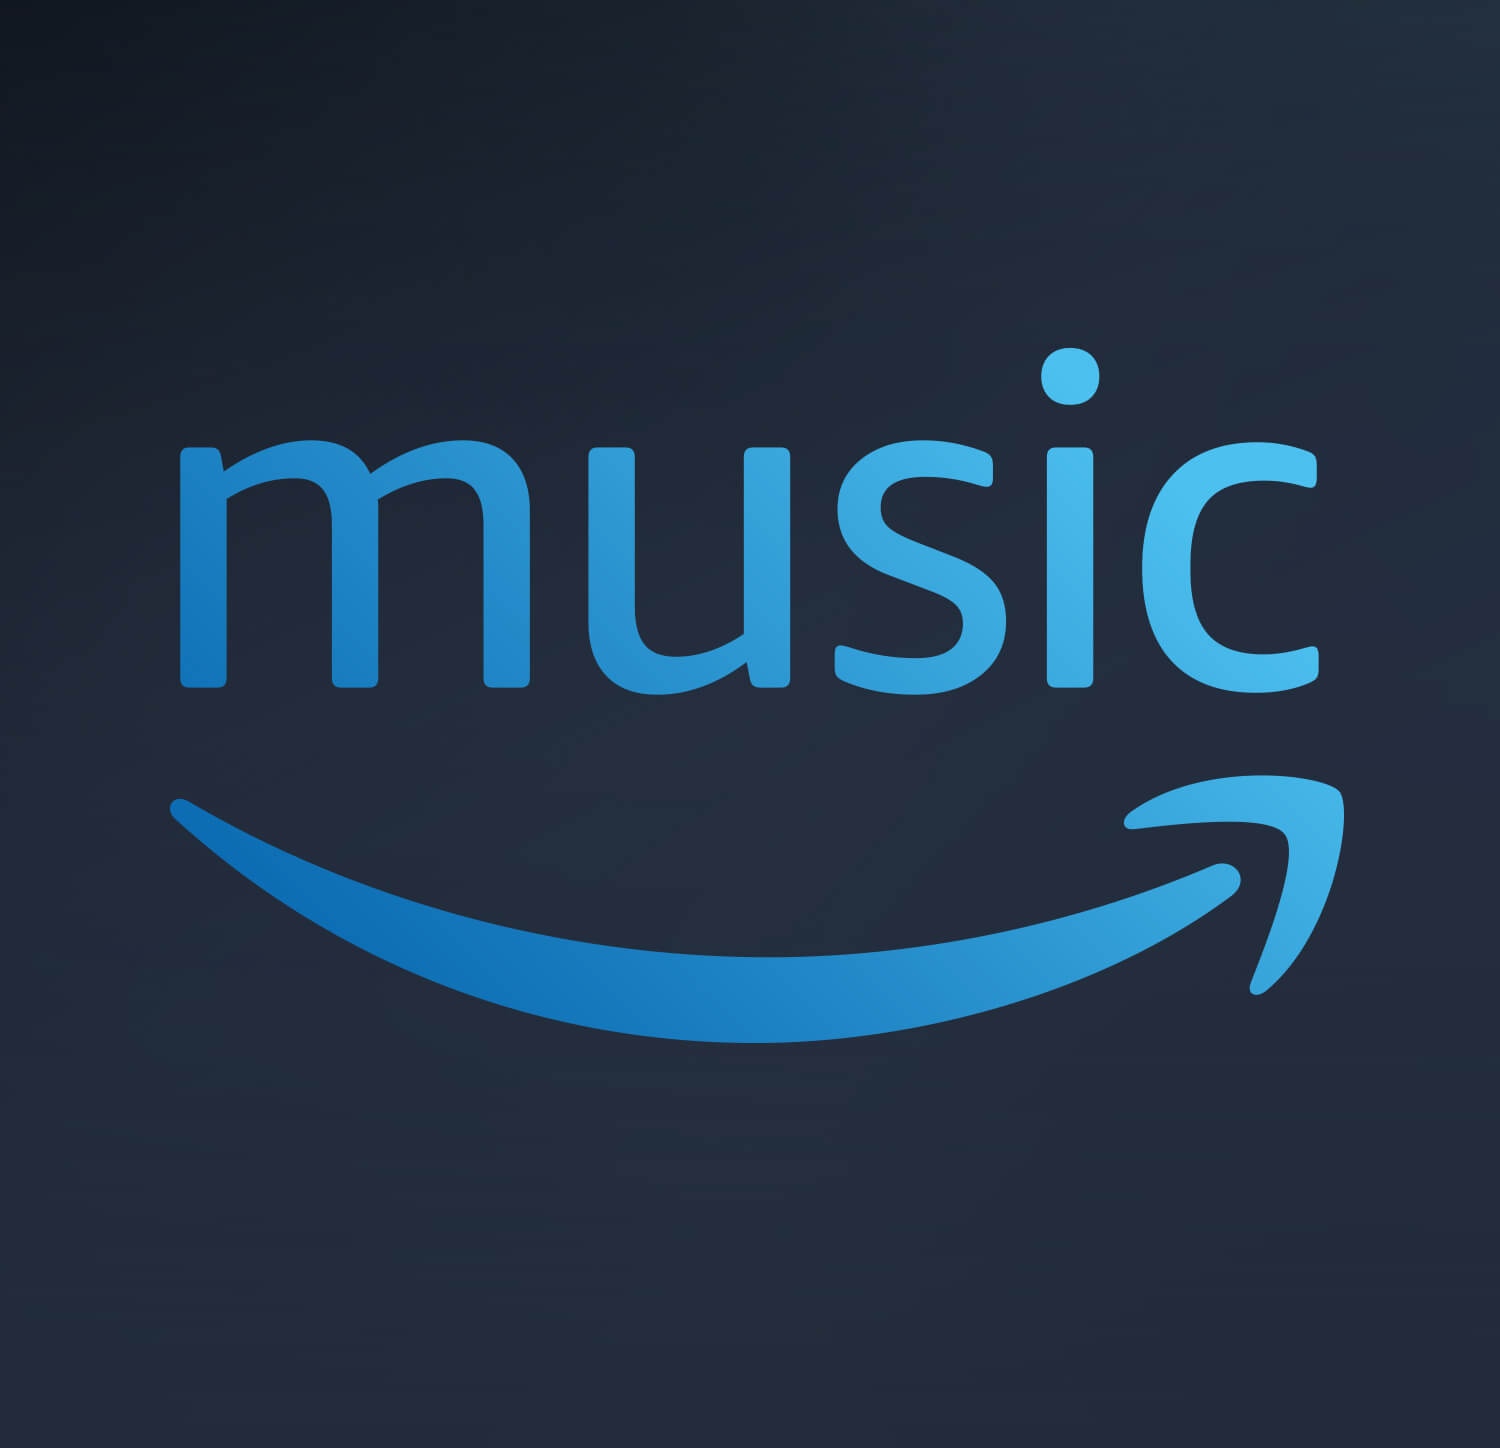 Free Music HD trial for 30 days (after that, £14.99/month)